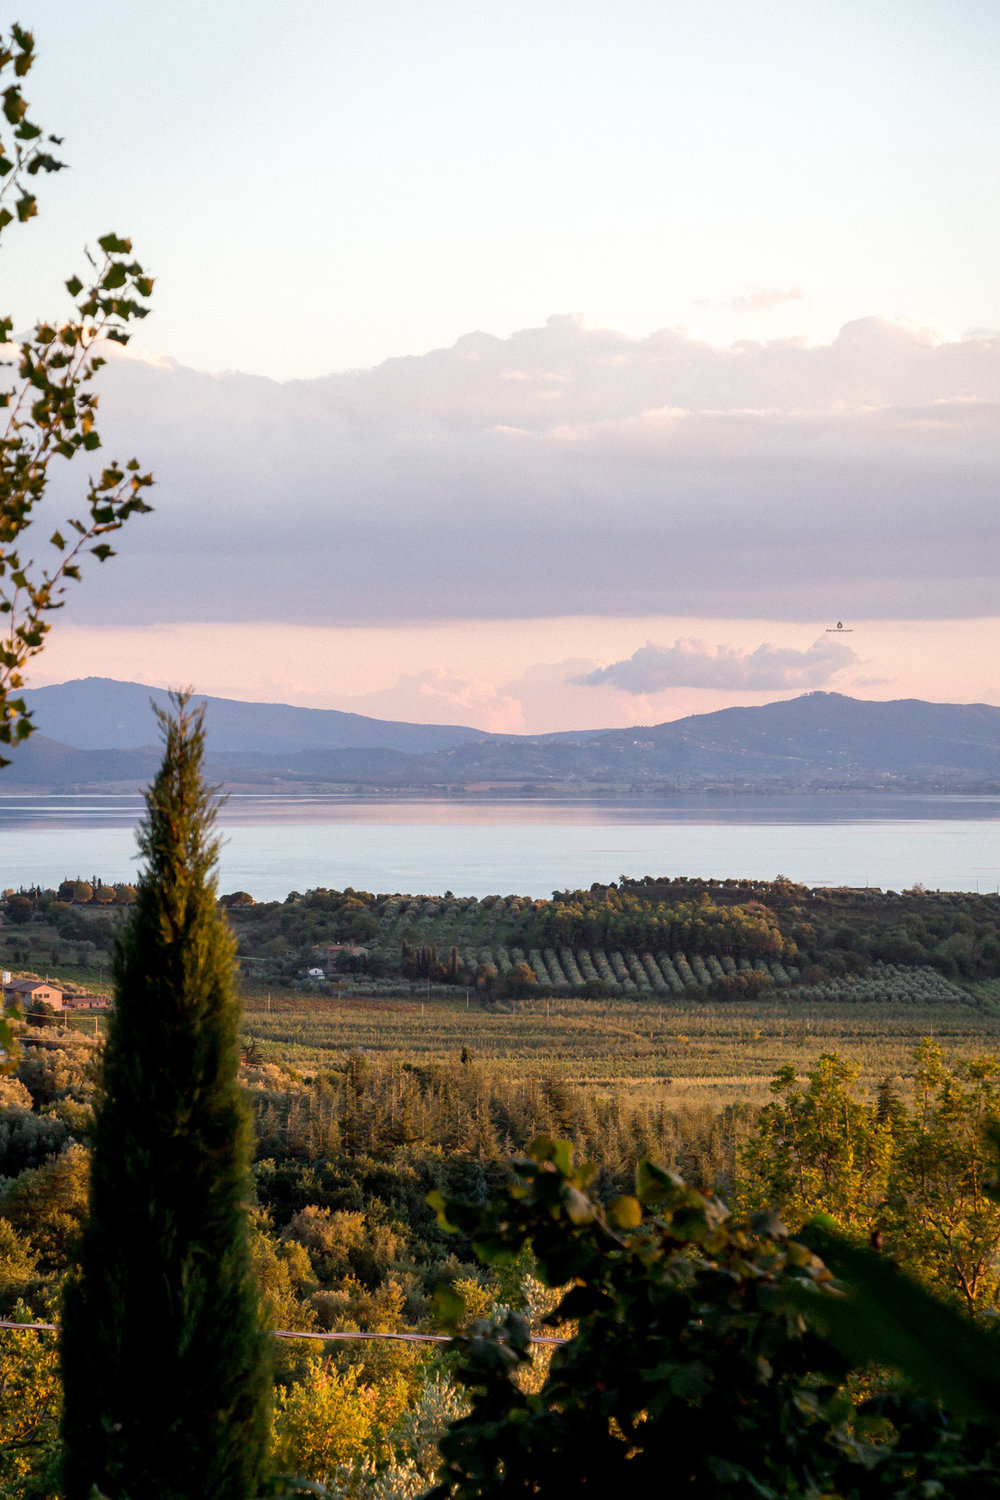 Views of Trasimeno lake, Umbria